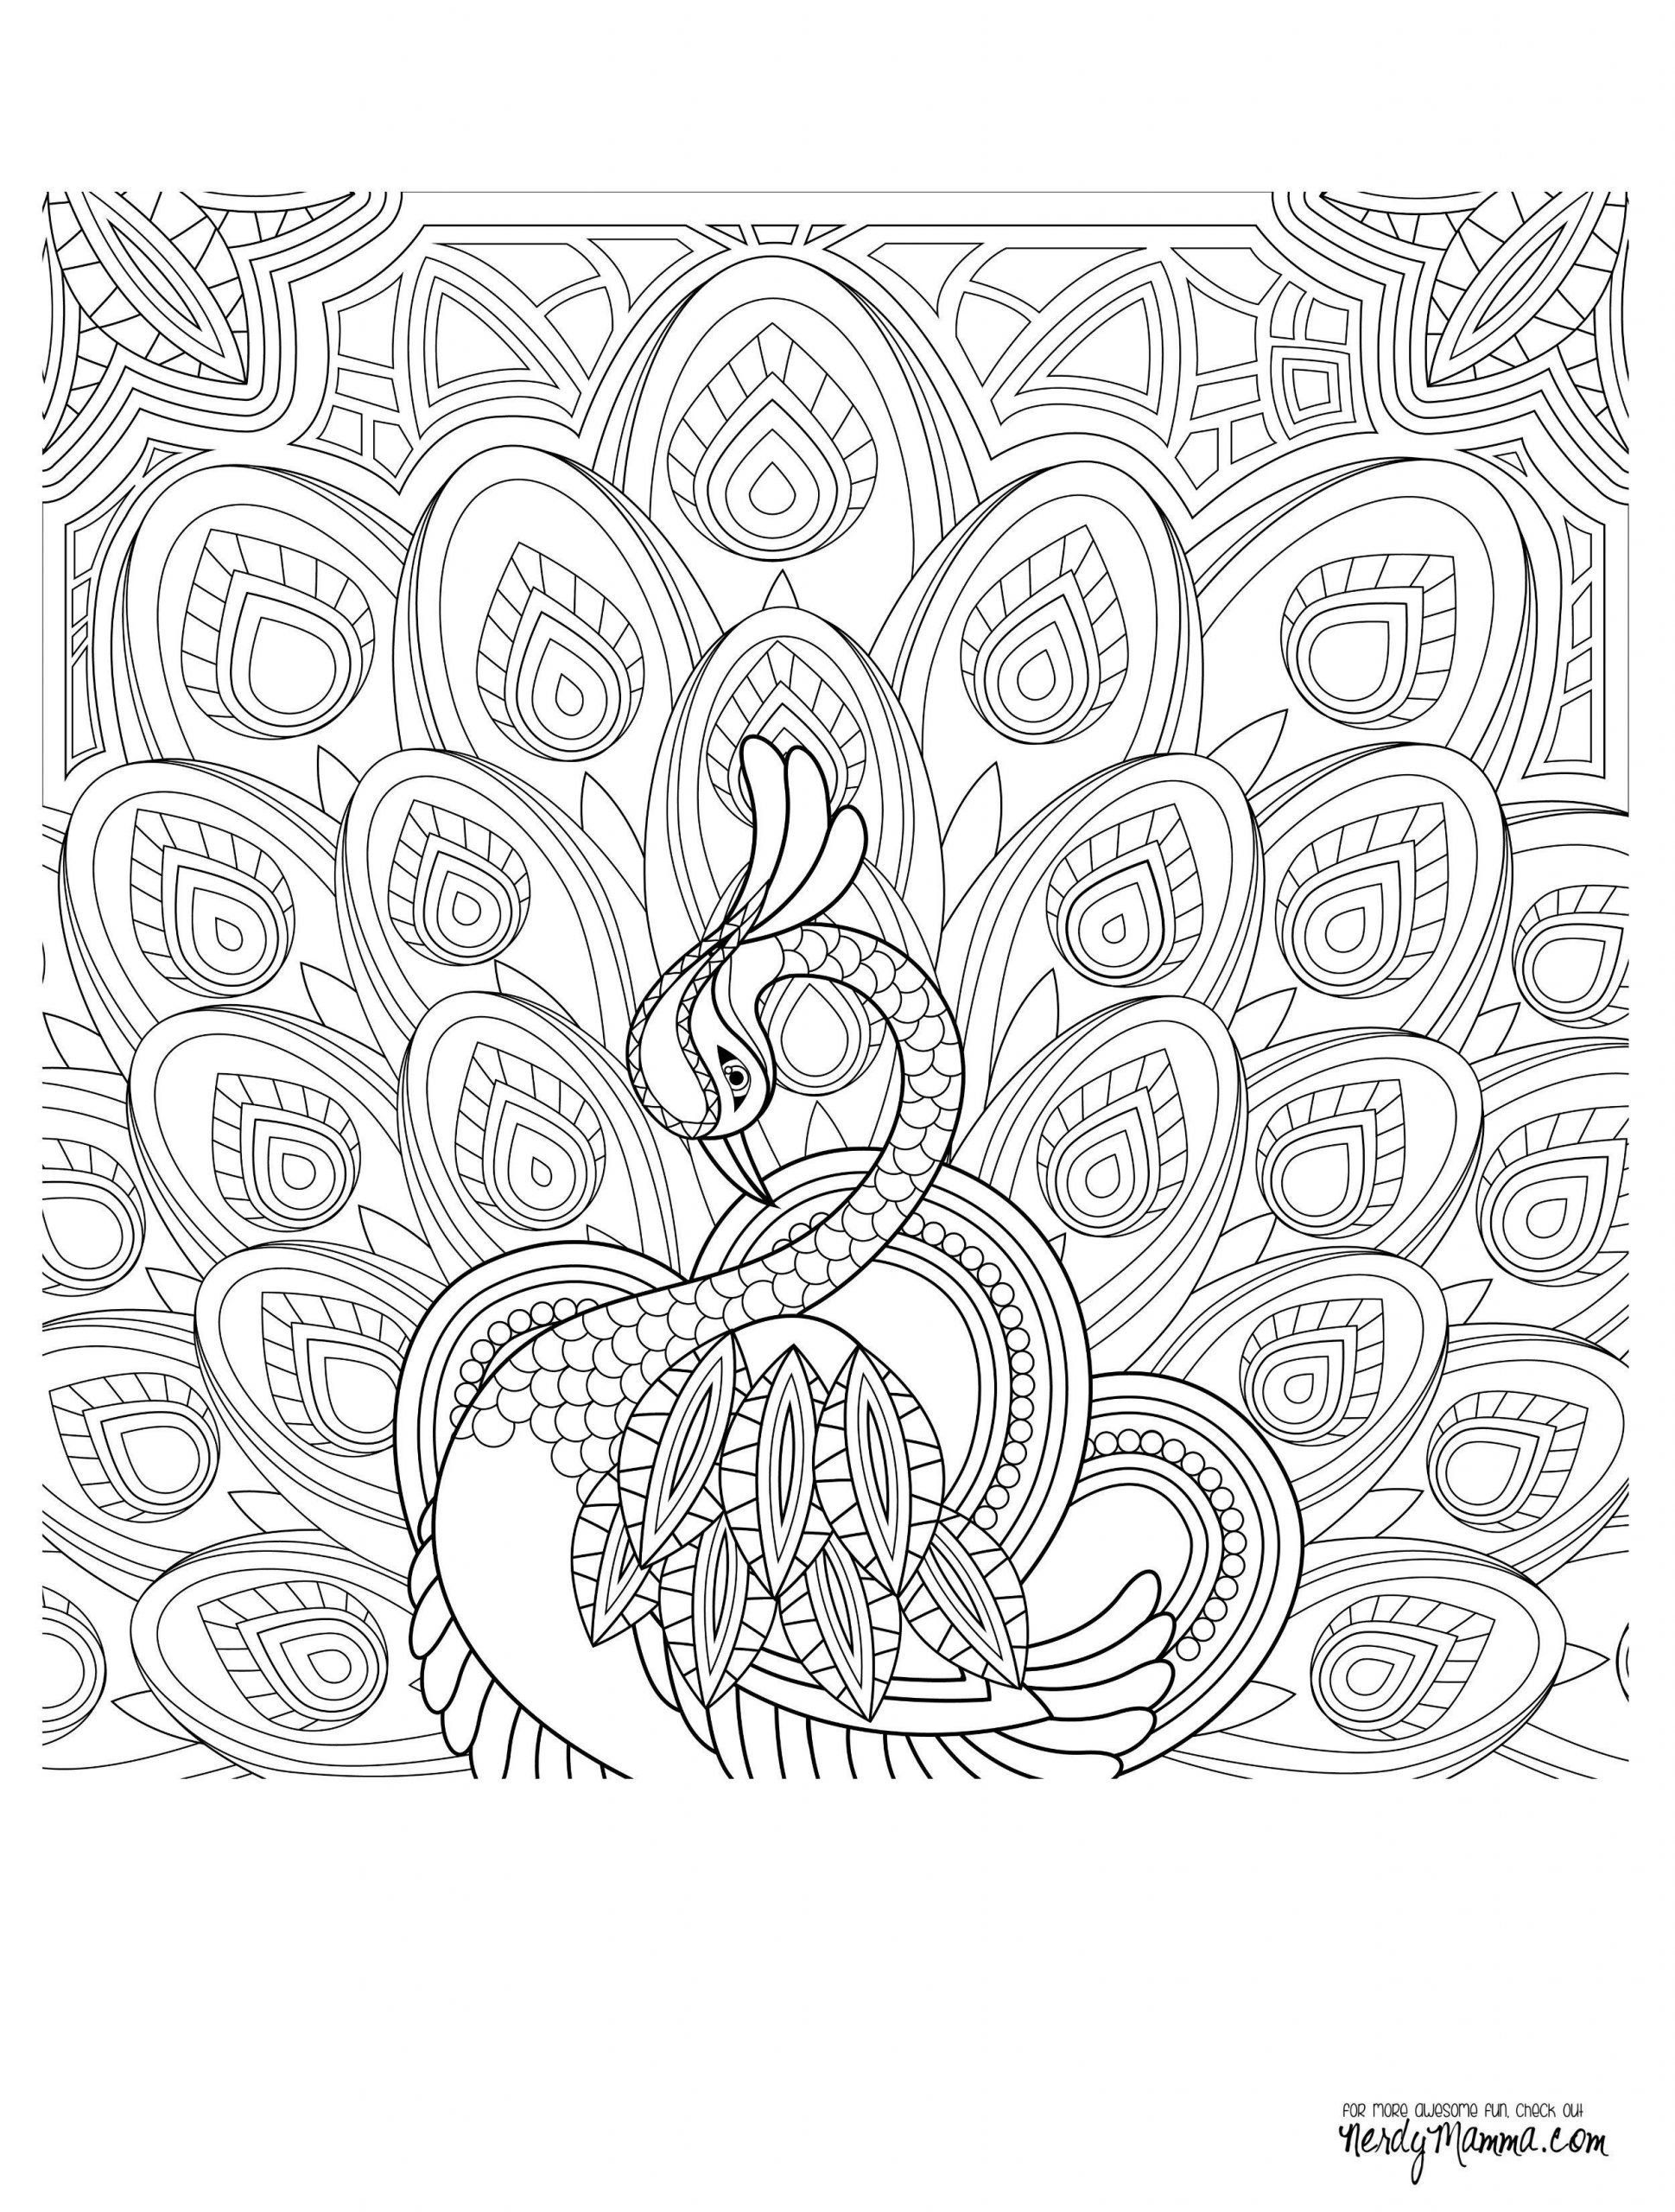 Coloring Games Online For Adults Coloring Pages Coloring Games Pages For Adults To Print Love Coloring Pages Heart Coloring Pages Mandala Coloring Pages